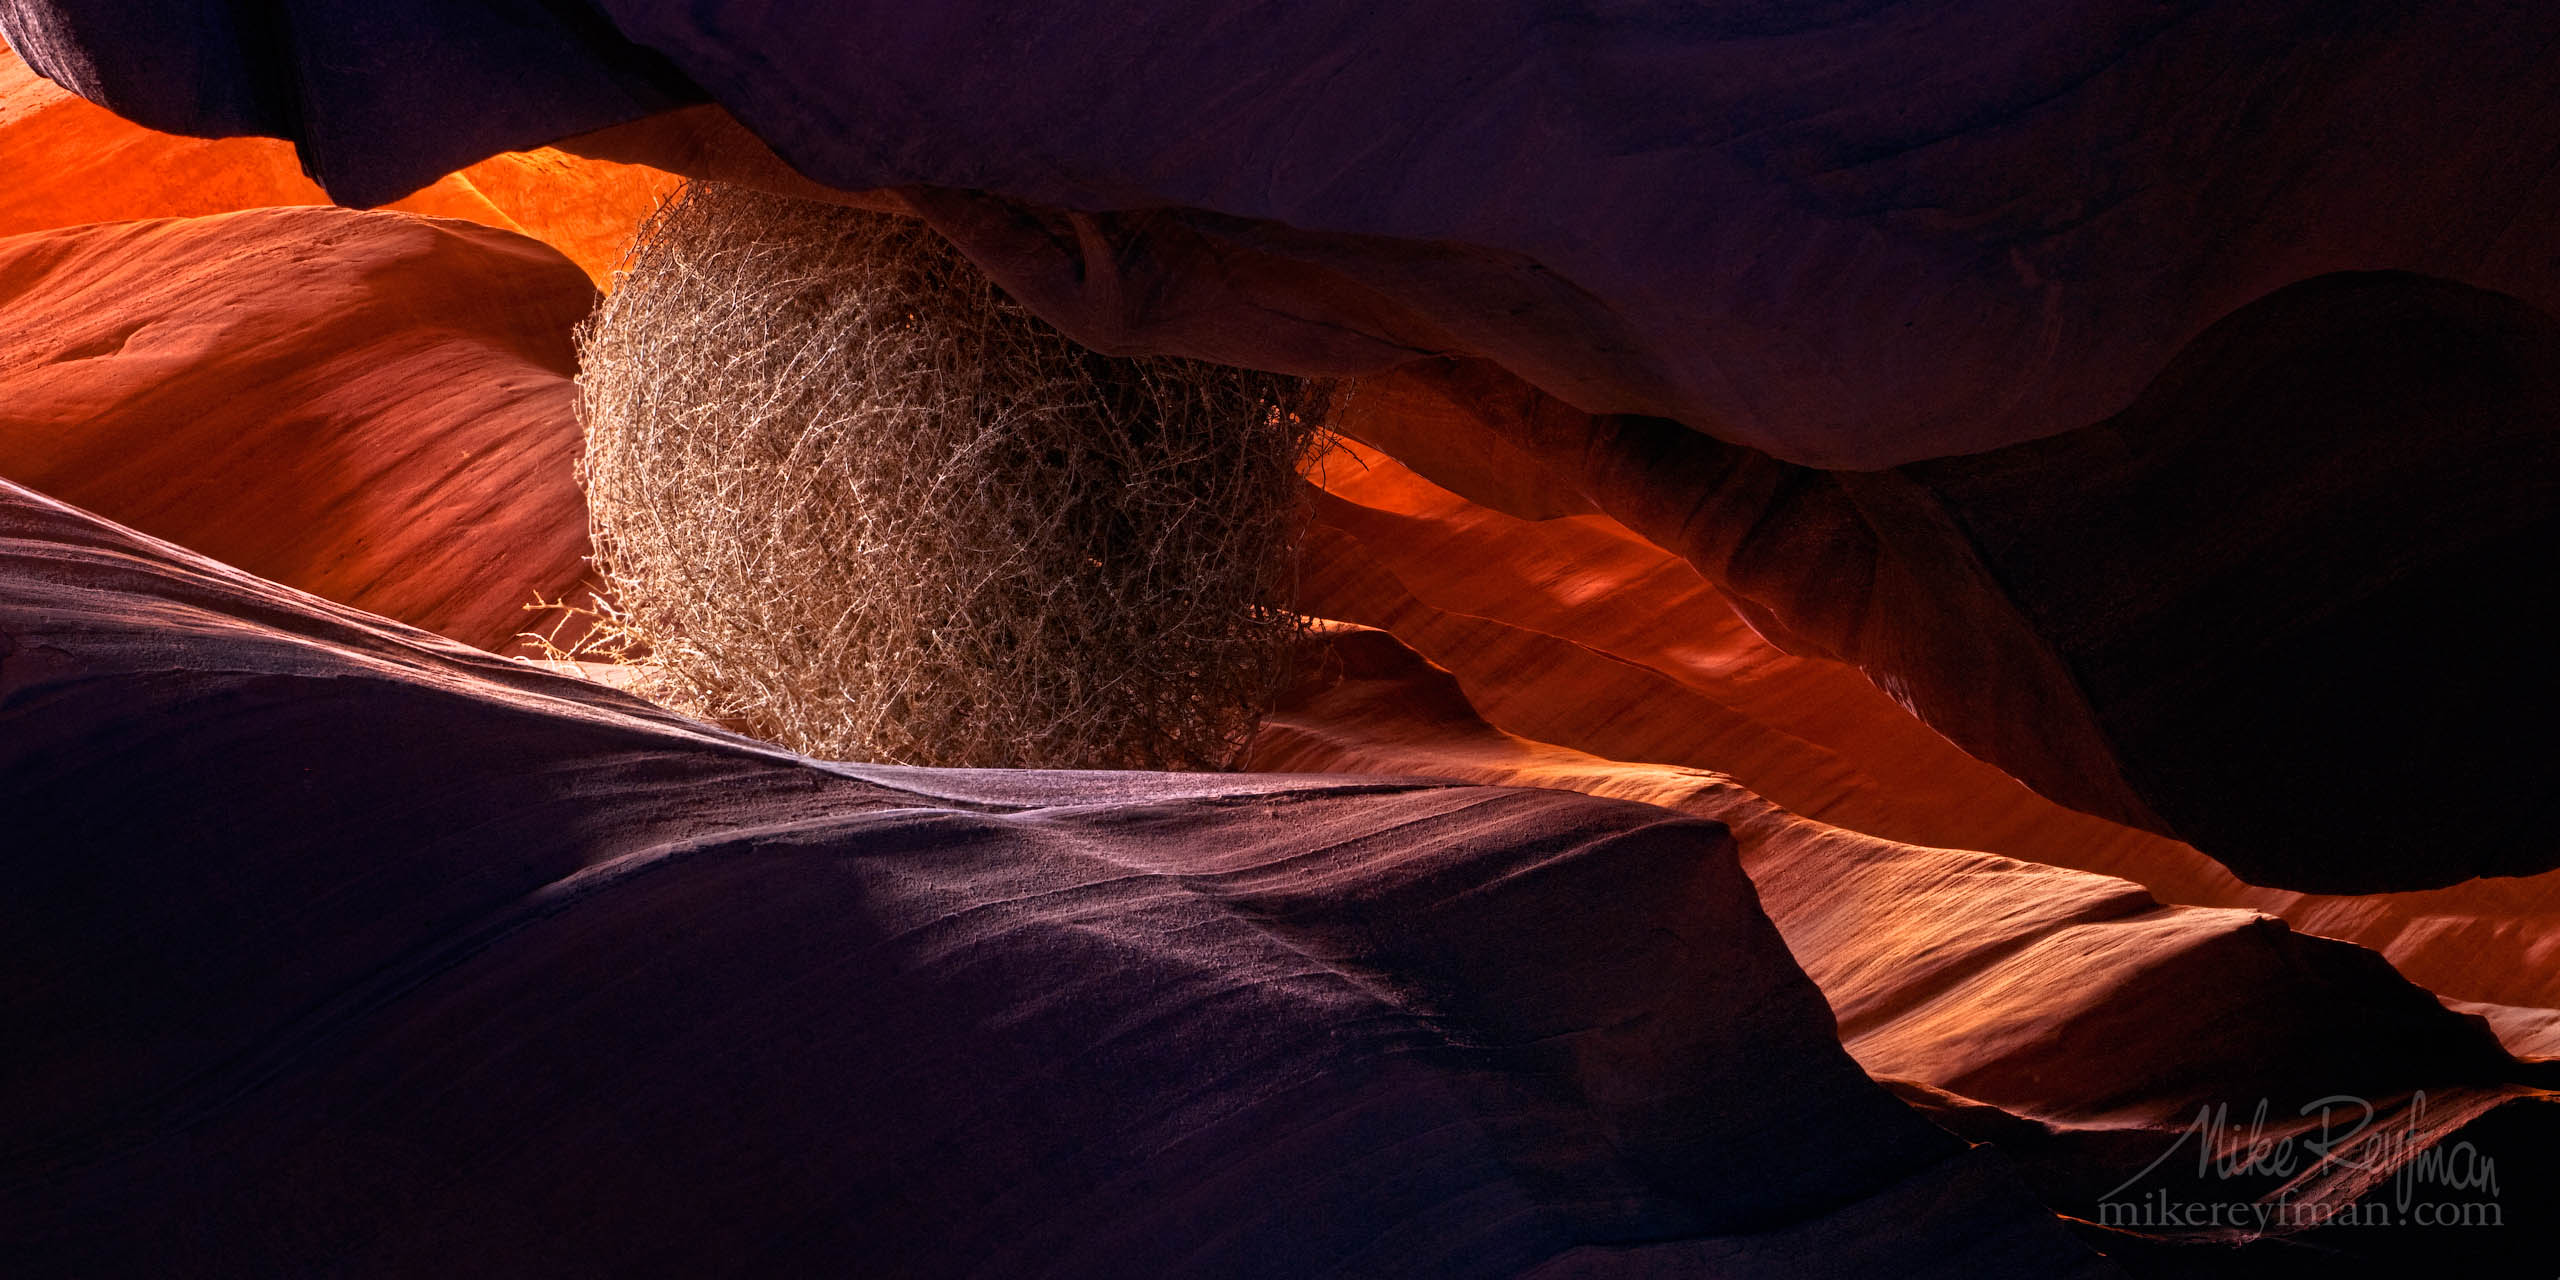 Under the Pressure. Tumbleweed stuck in a sandstone rock formation at Upper Antelope Canyon, Arizona, USA. P12-MRMER7257-8-9 - Selected panoramic images with 2:1 aspect ratio - Mike Reyfman Photography